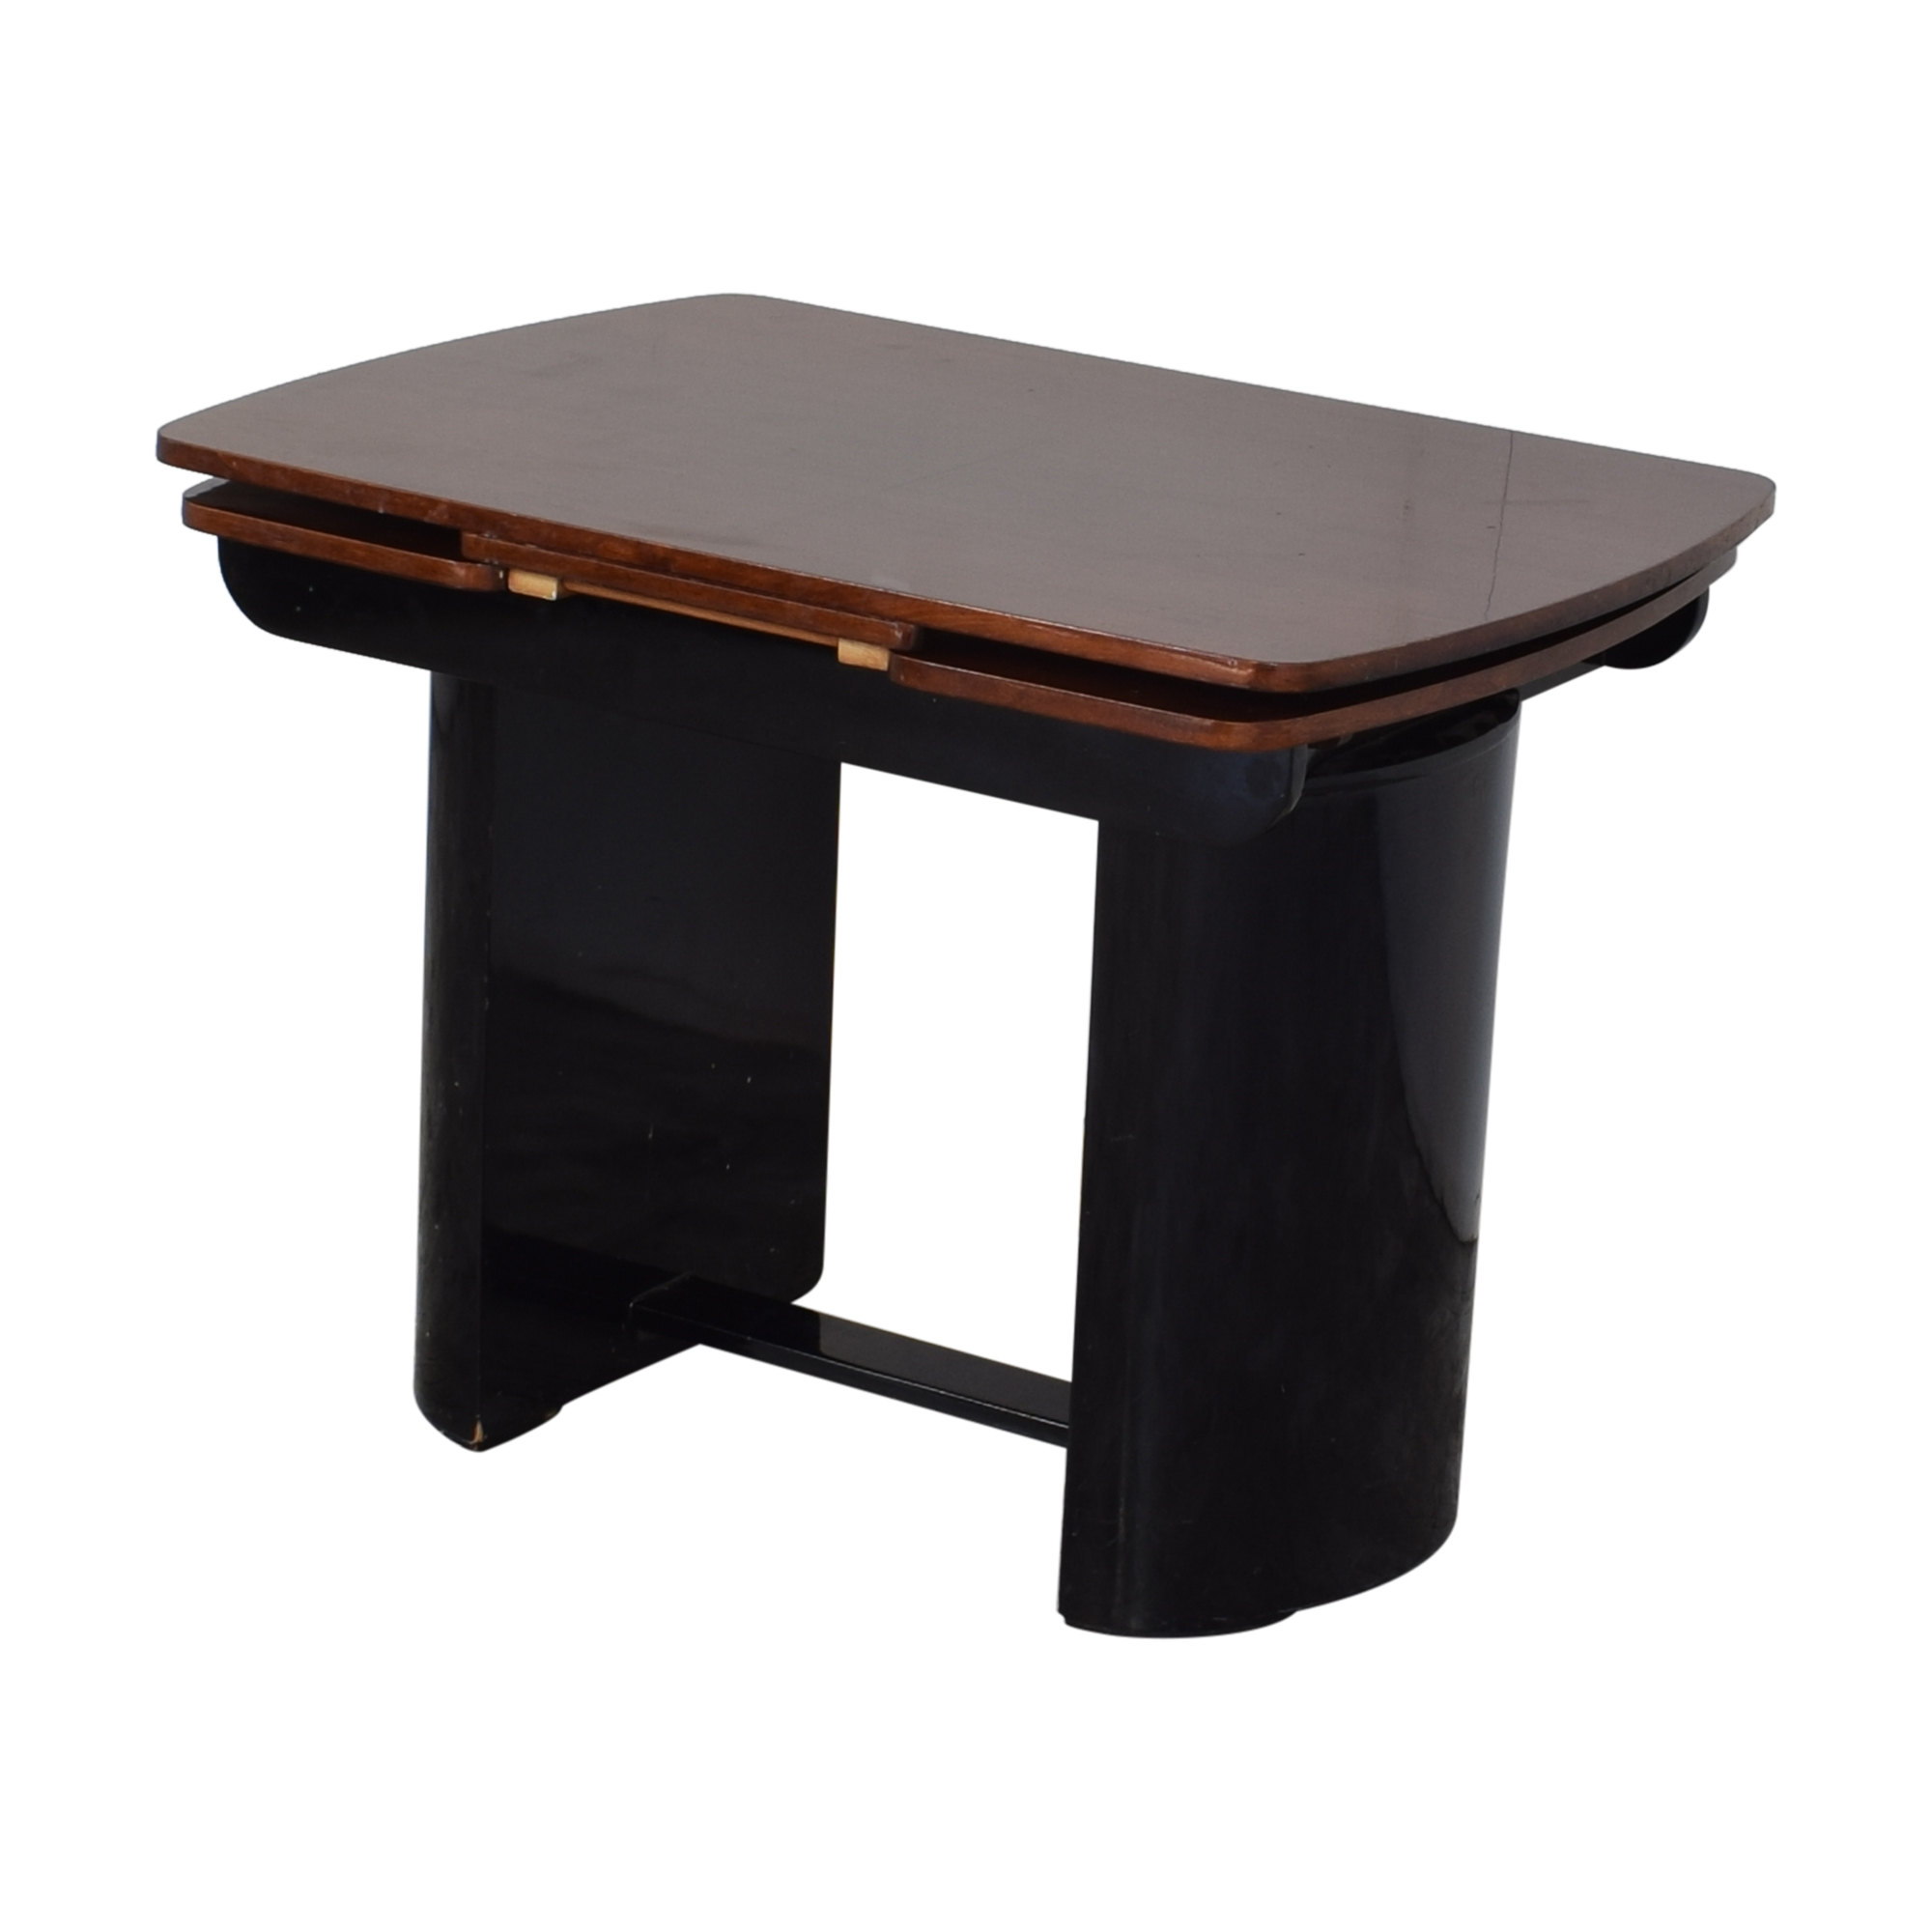 Art Deco Style Expanding Table on sale